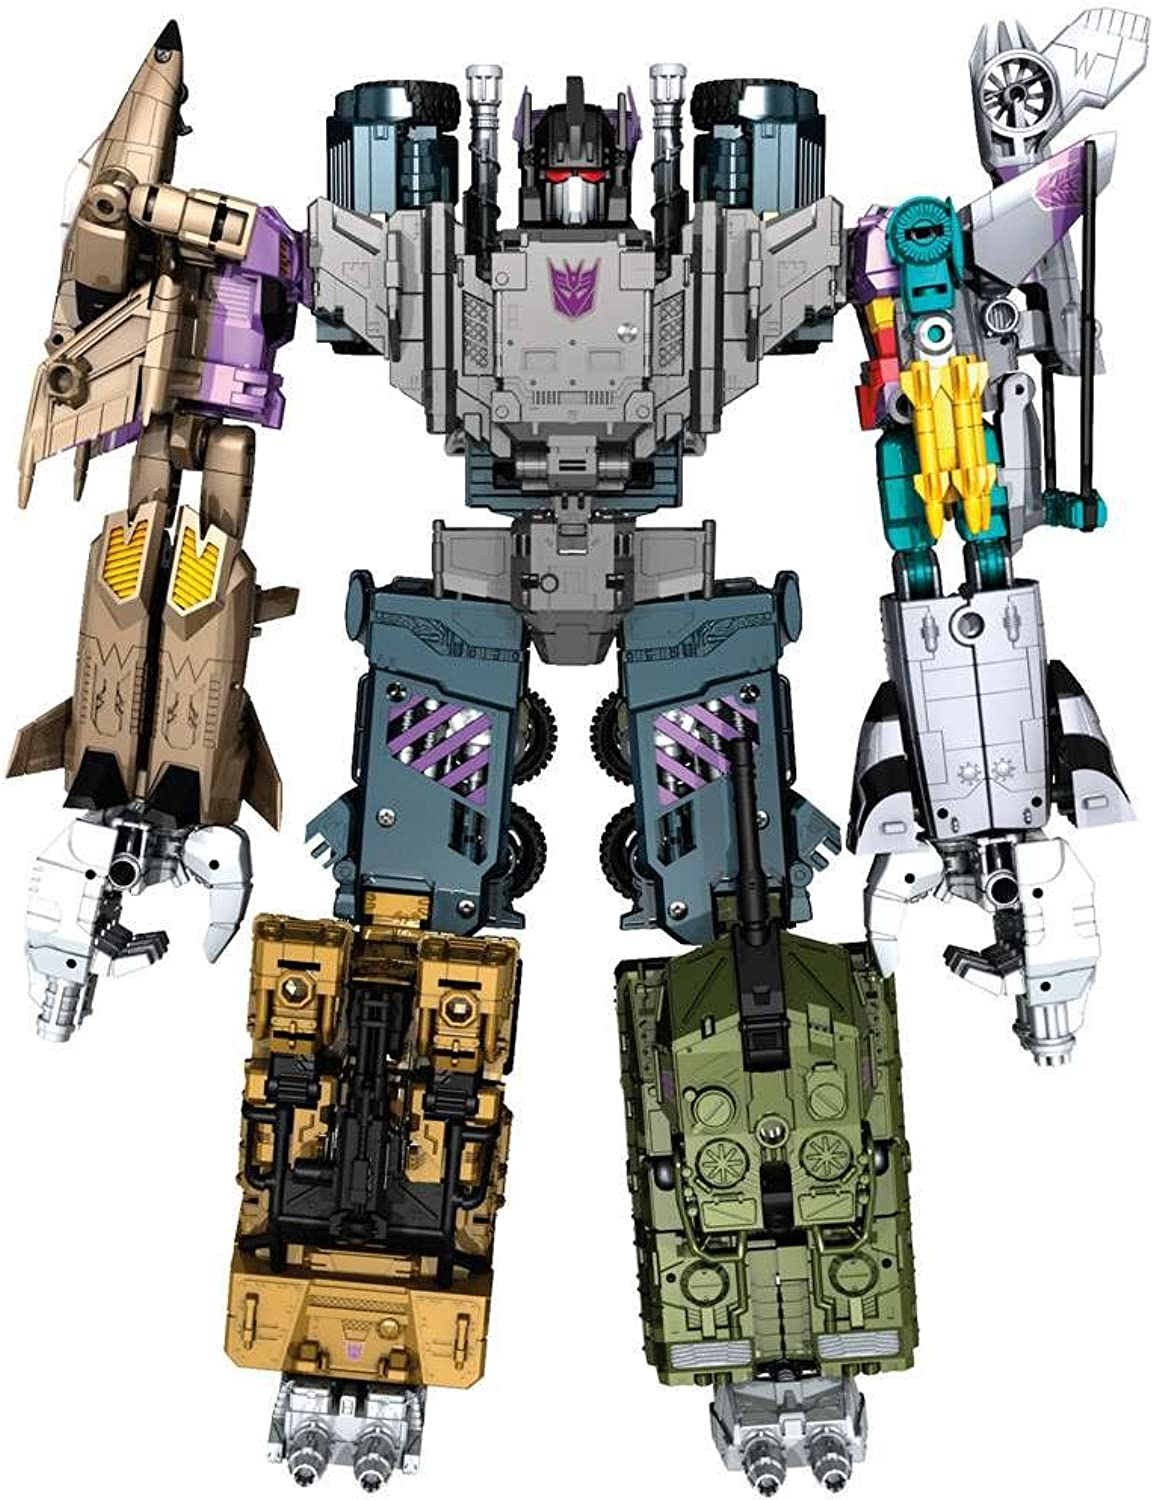 Transformers Generations Combiner Wars Bruticus Action Figure Set [Onslaught, Vortex, Brawl, Swindle and Blast Off] by Transformers